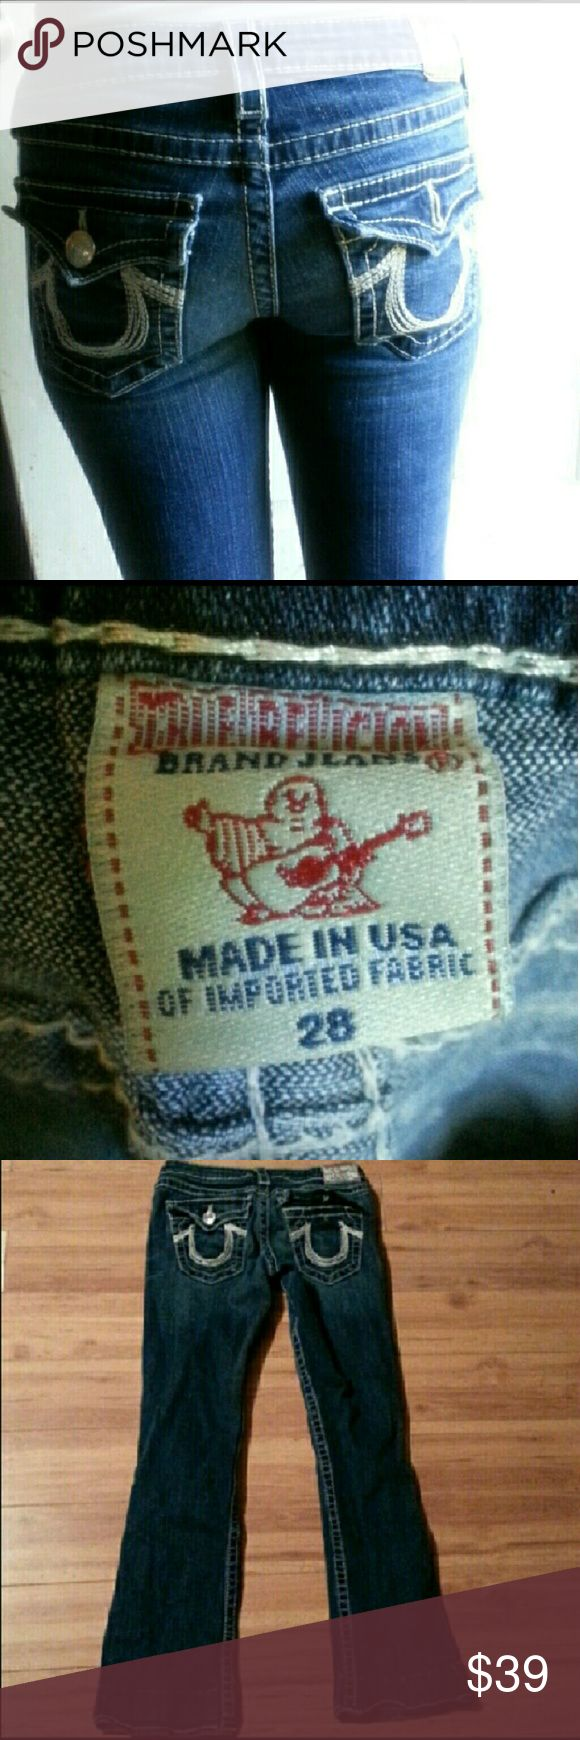 True  Religion  jeans # missed  back  button Size  28 hemmed  inseam  measures  30' True Religion Jeans Boot Cut